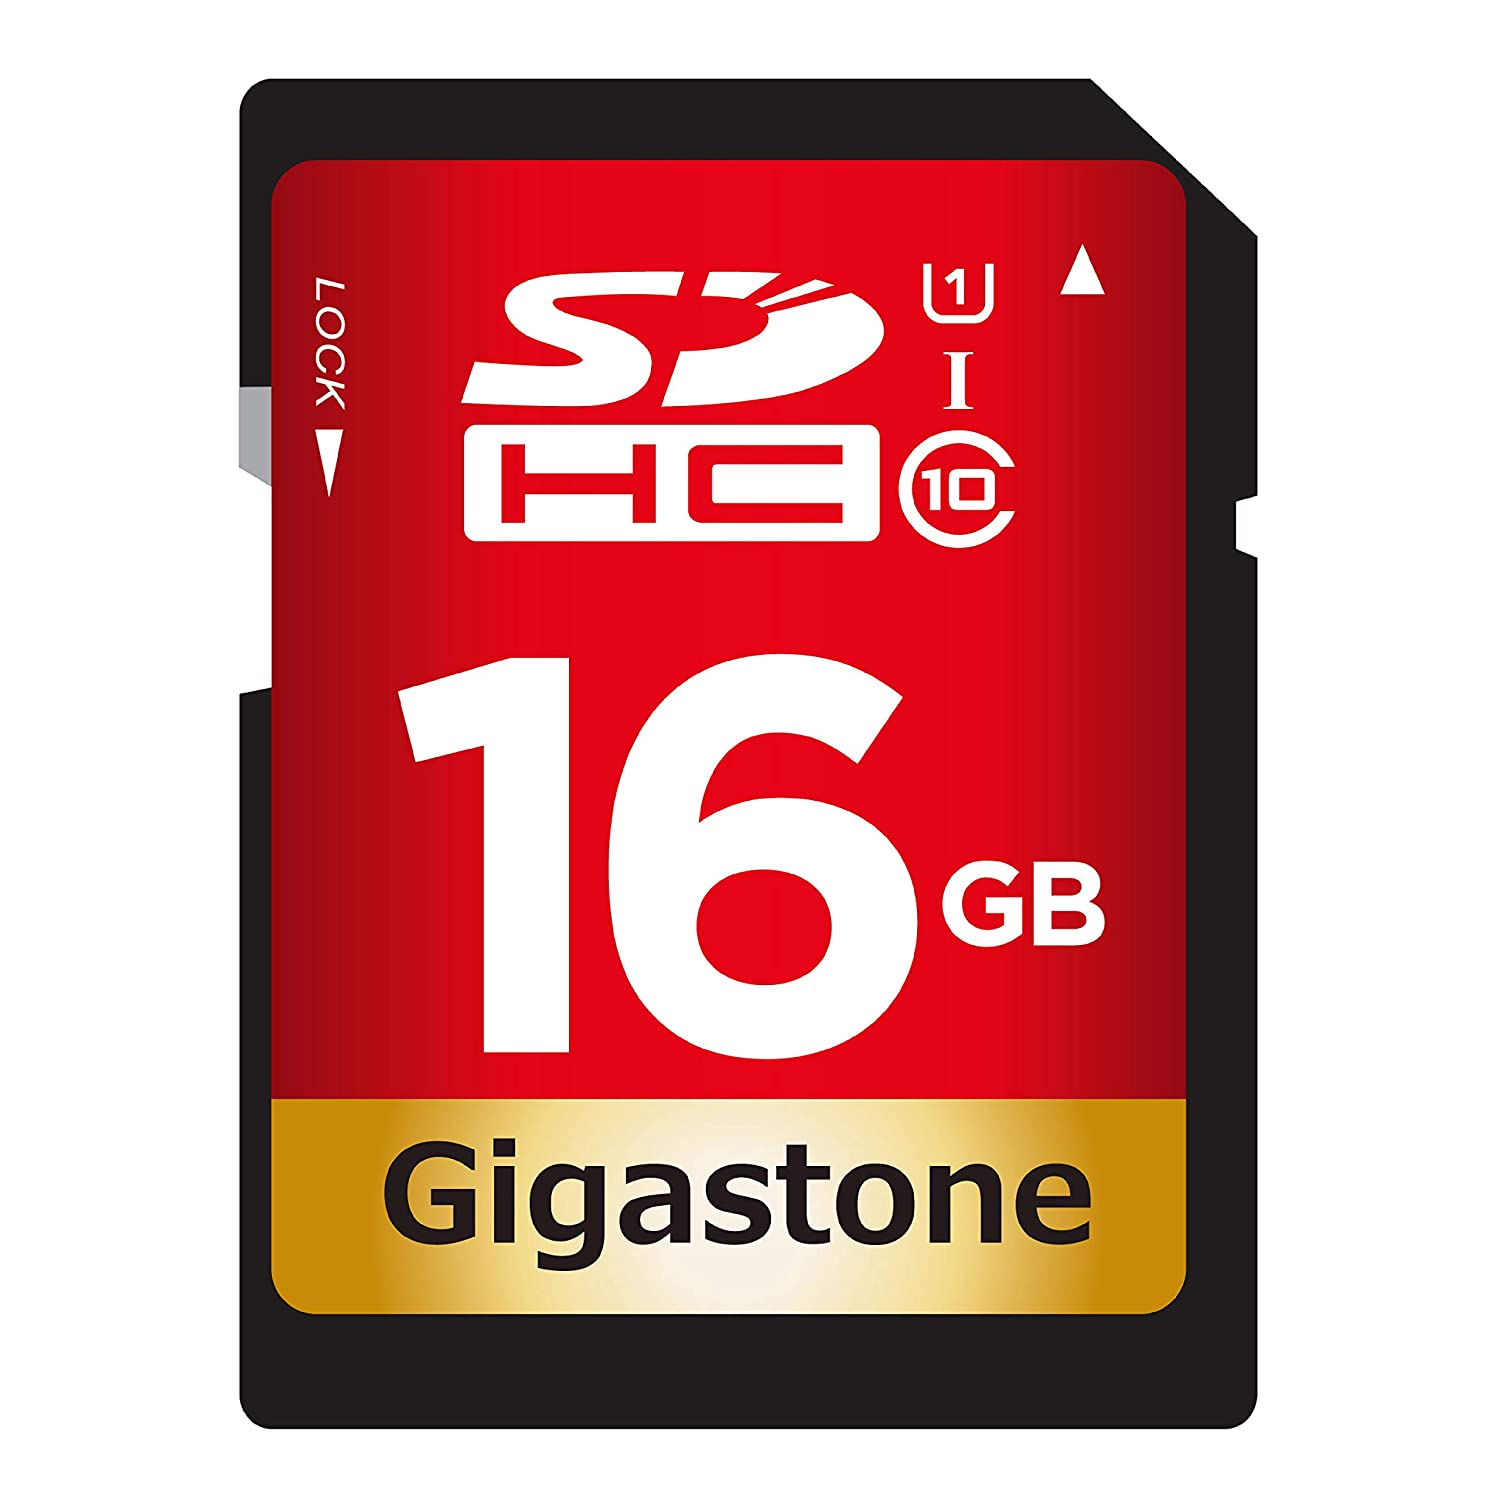 Gigastone 16GB SD Card UHS-I U1 Class 10 SDHC Memory Card High-Speed Full HD Video Canon Nikon Sony Pentax Kodak Olympus Panasonic Digital Camera